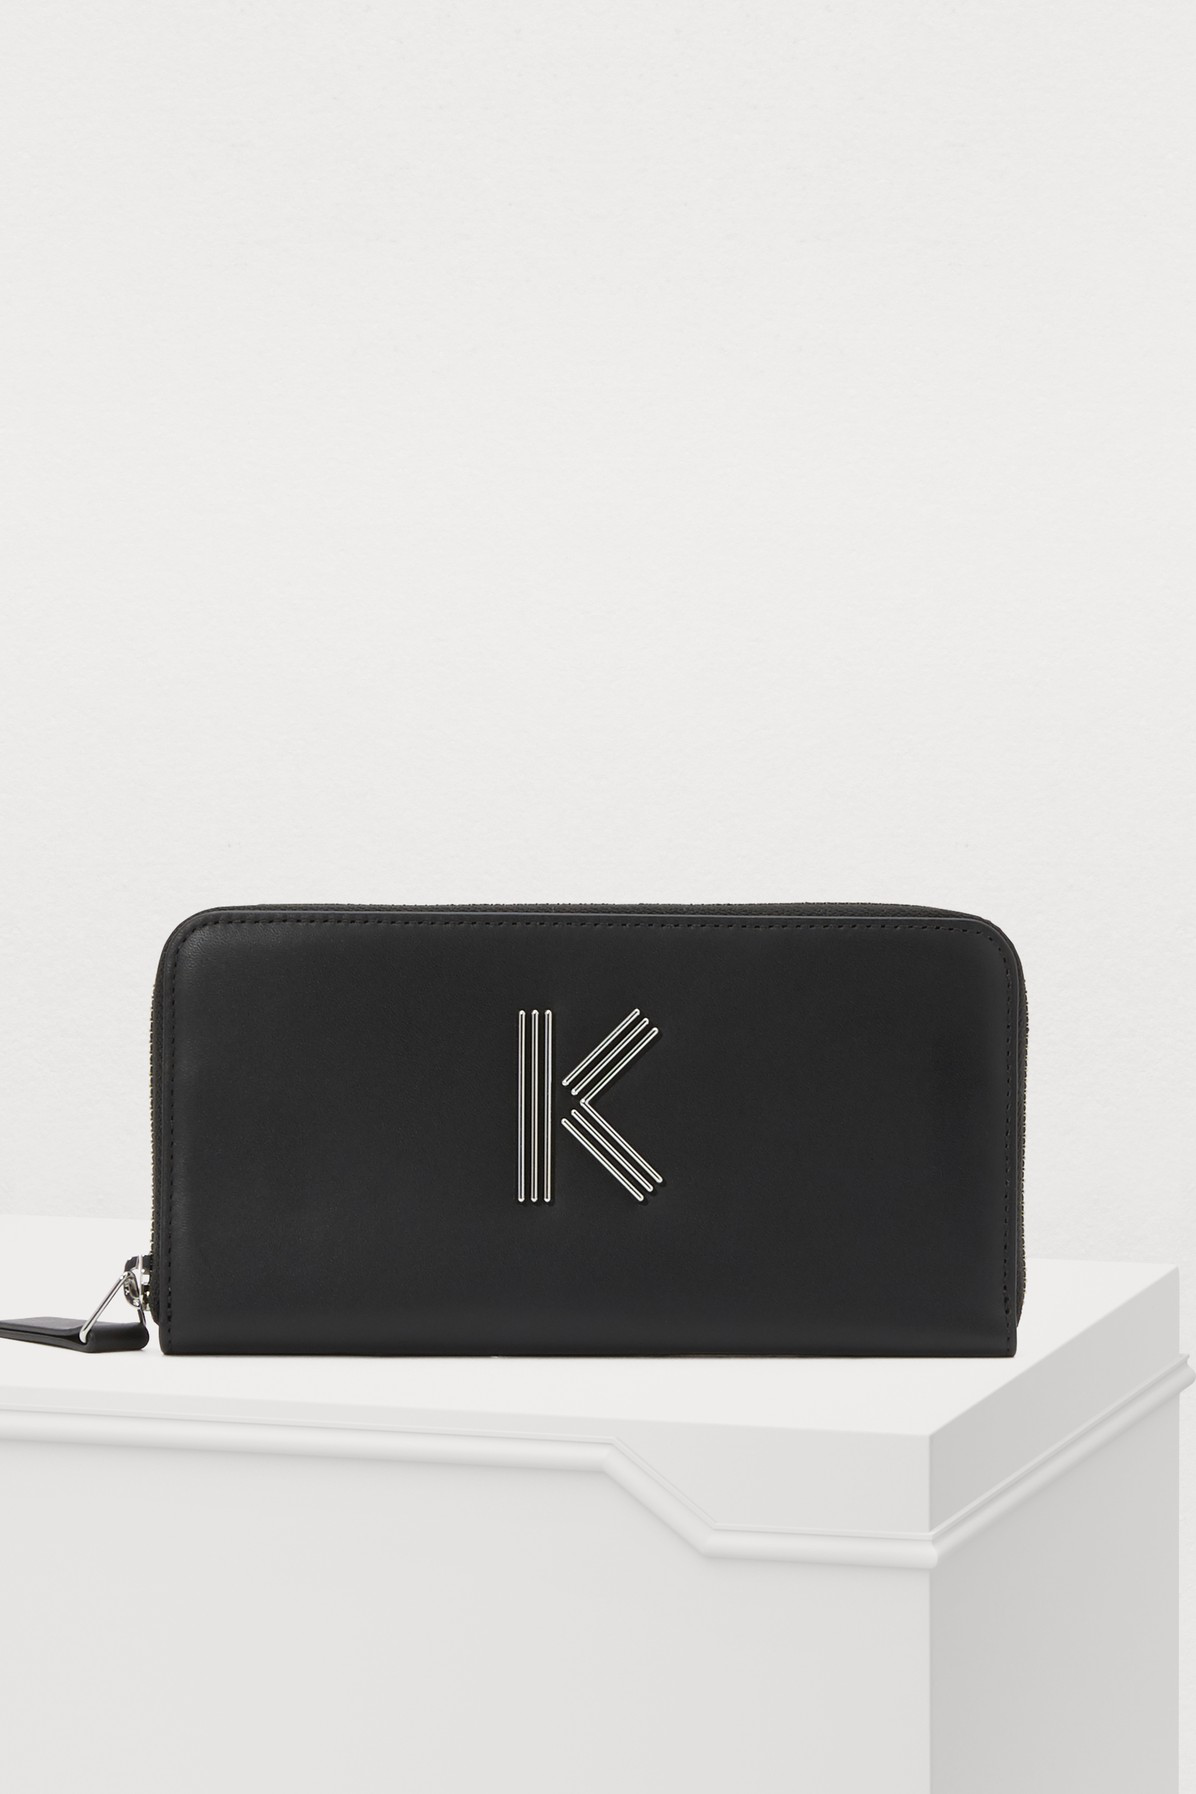 16584108 Kenzo Accessories for Women | ModeSens